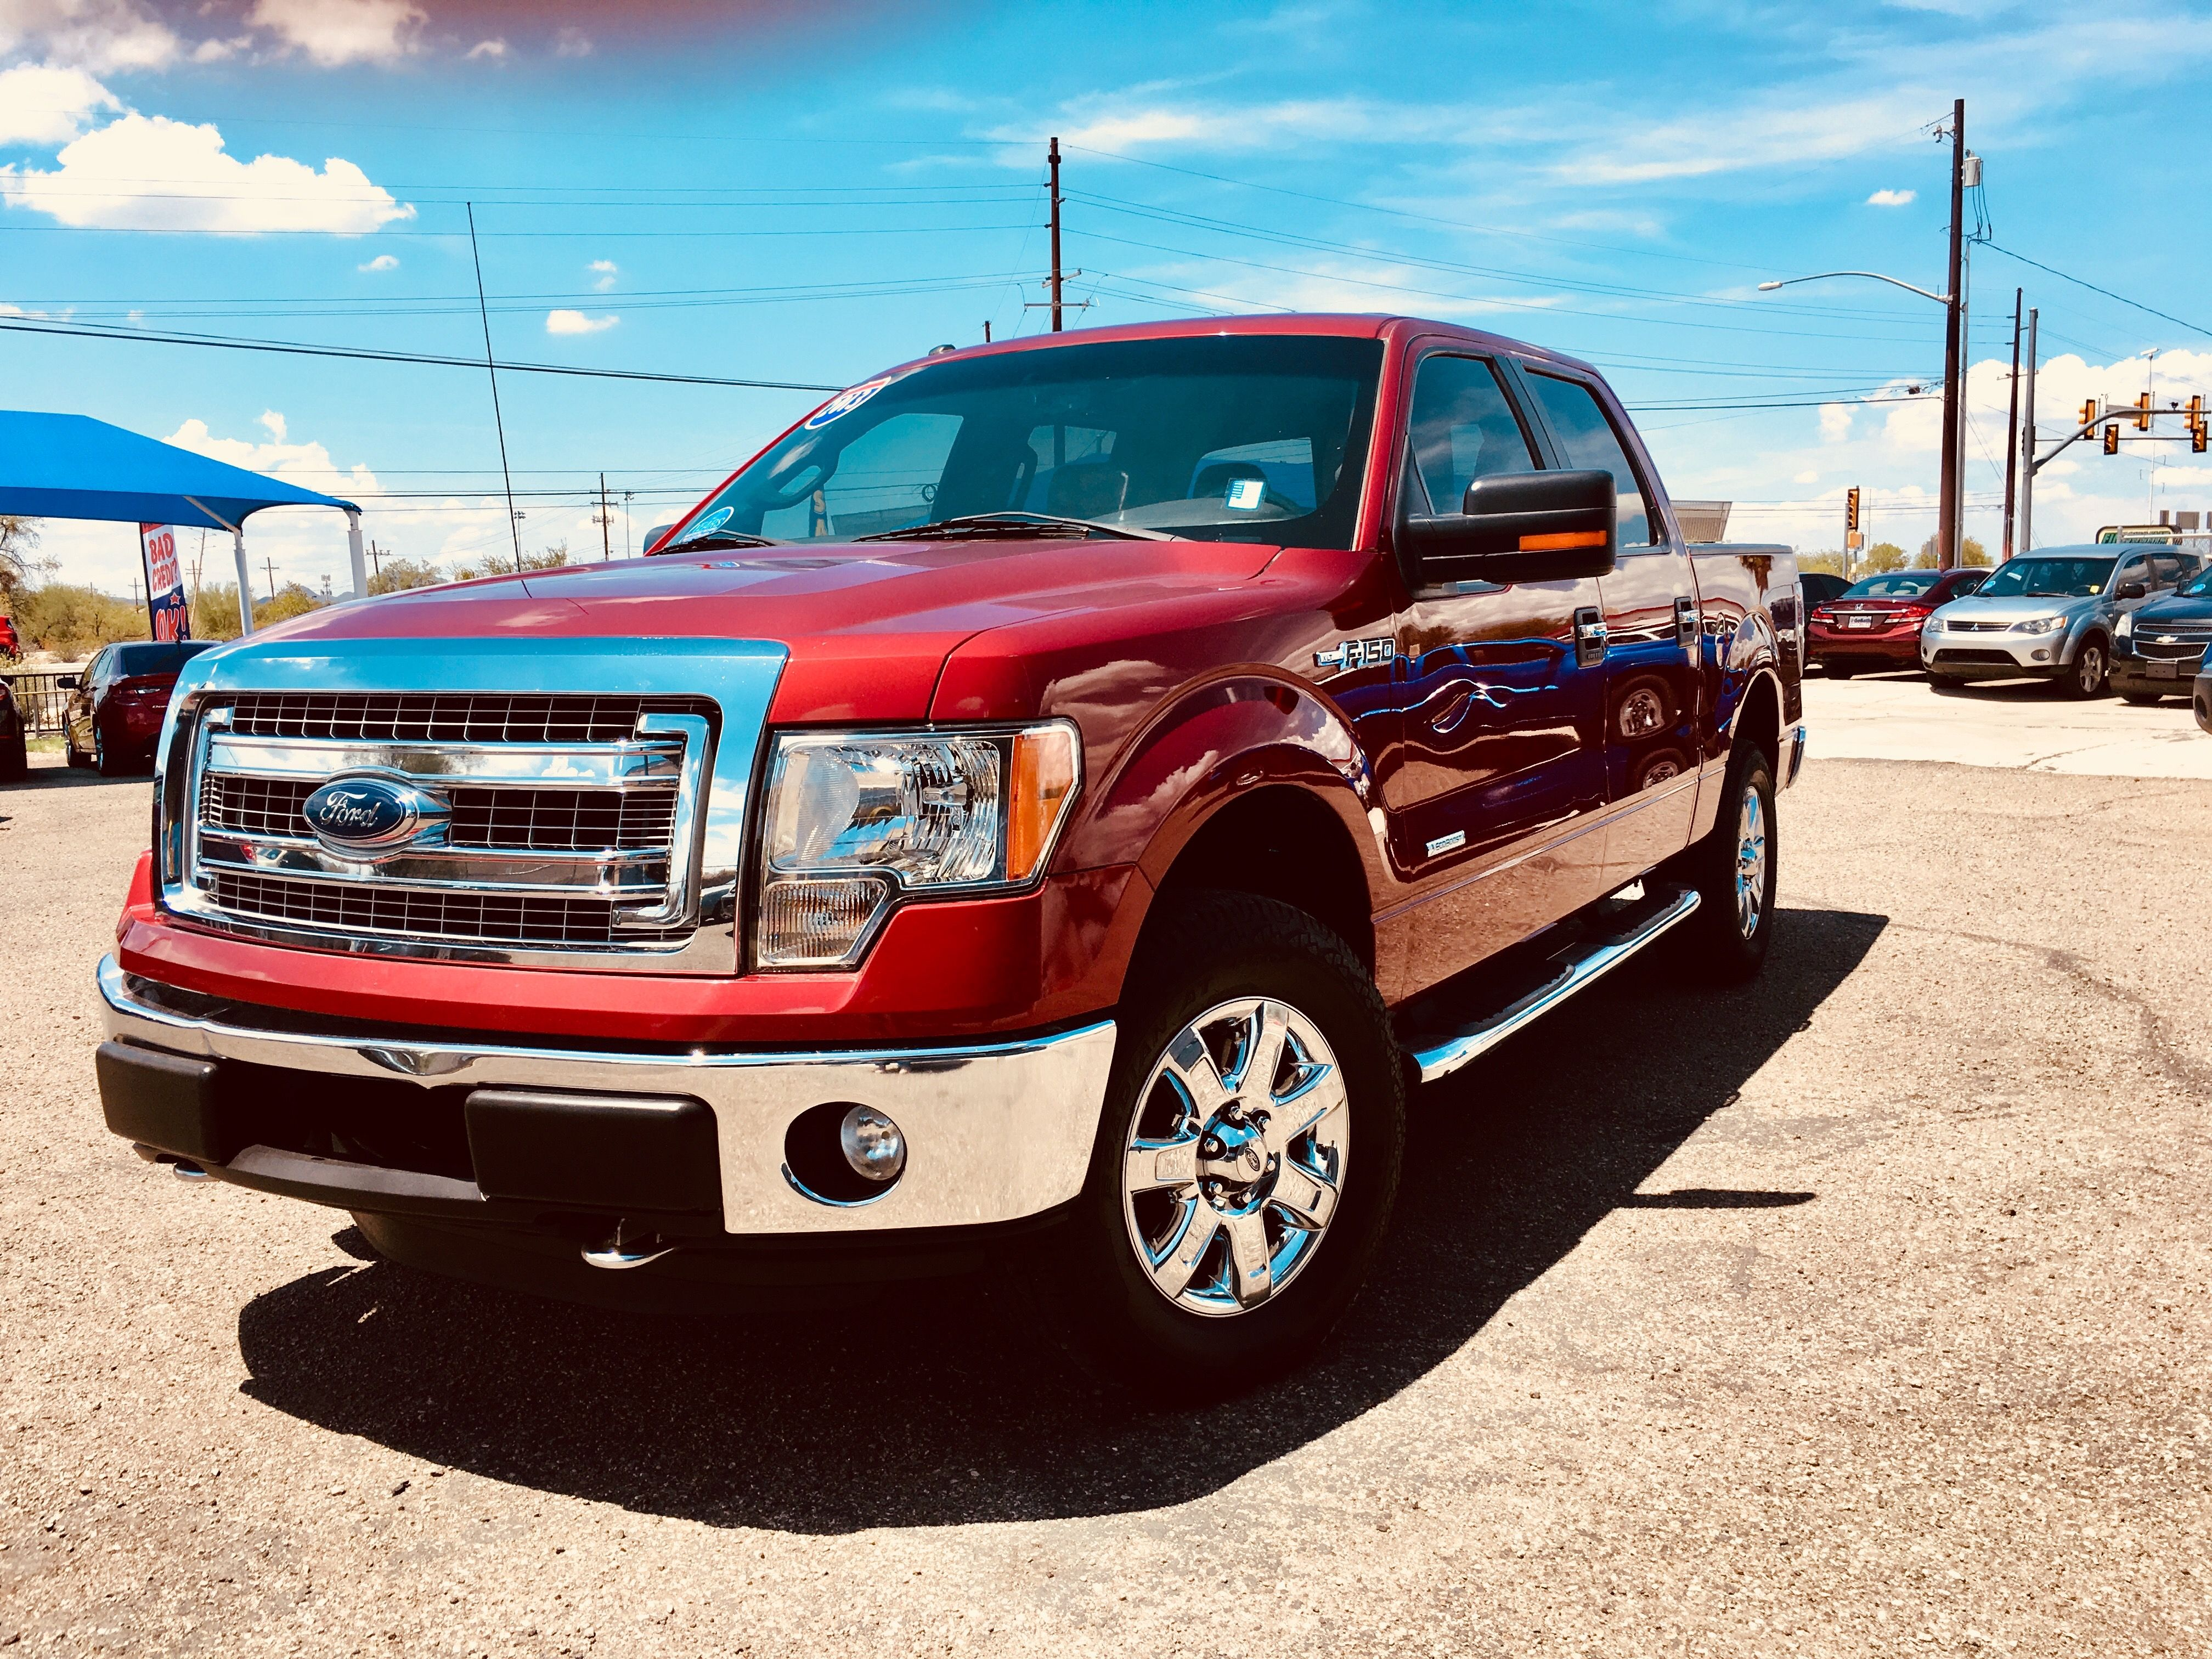 2013 Ford F150! Cars for sale, Used cars, Cars for sale used